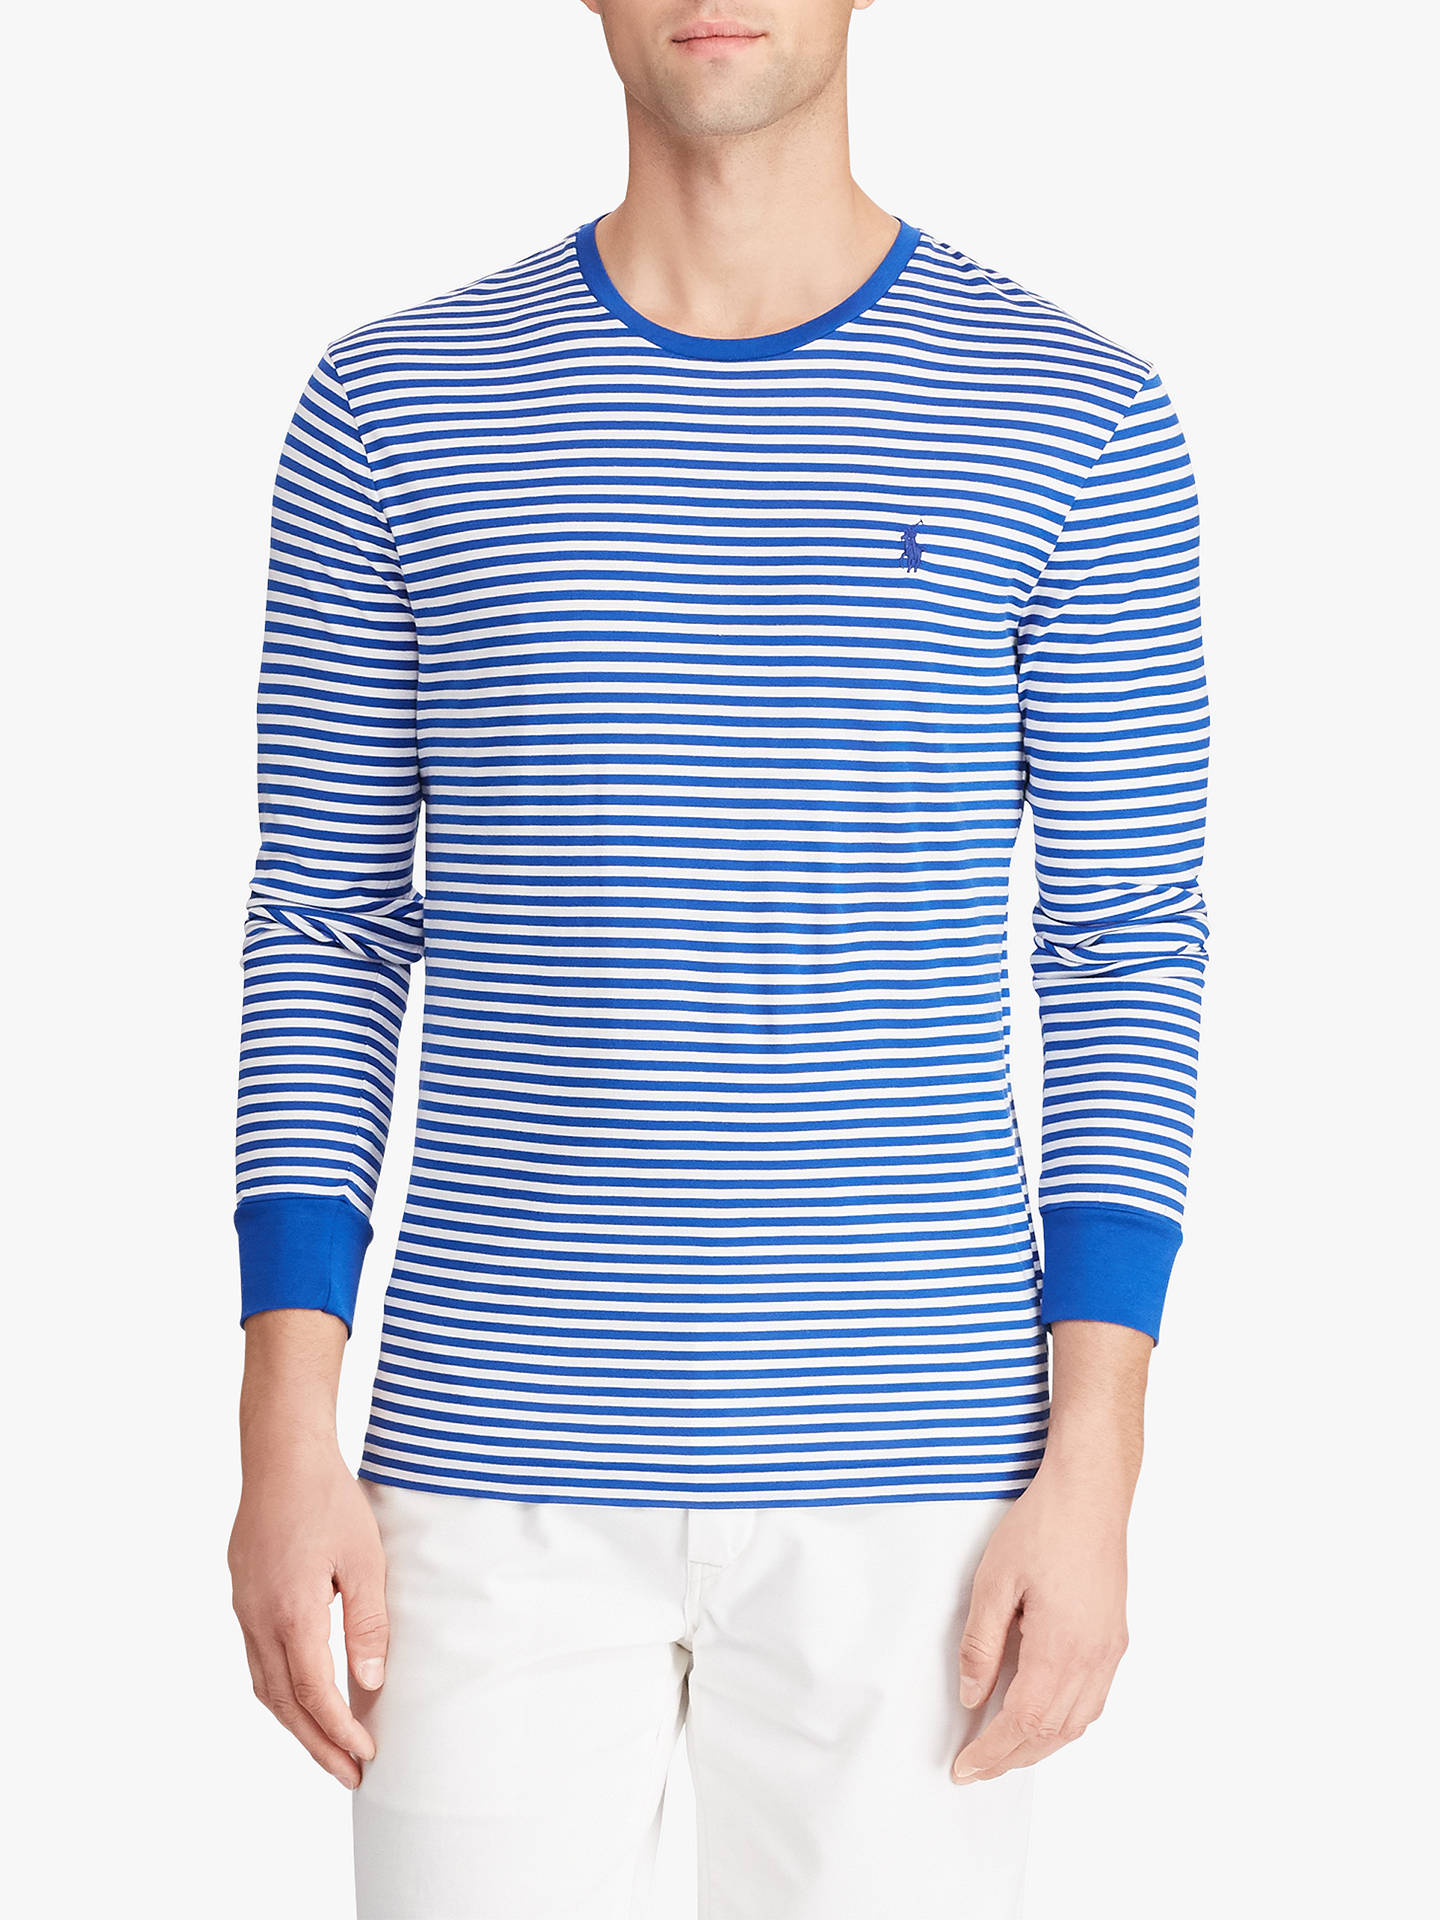 low priced 01c5e b1235 Polo Ralph Lauren Custom Slim Fit Long Sleeve Striped T-Shirt, Sapphire  Star/White